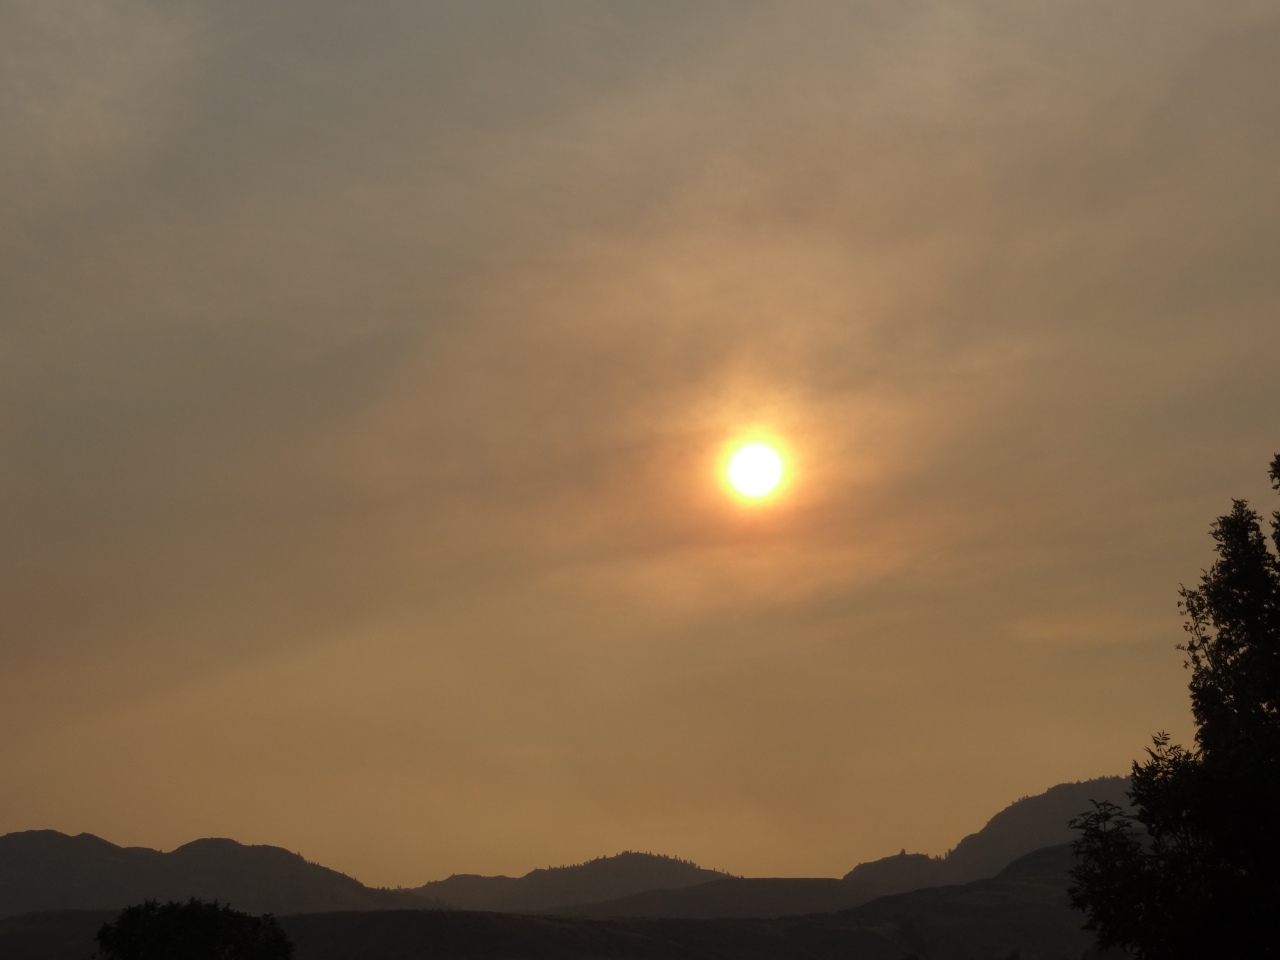 And in the Evening the Sun Was Surrounded With Red From the Ash Particles in the Sky